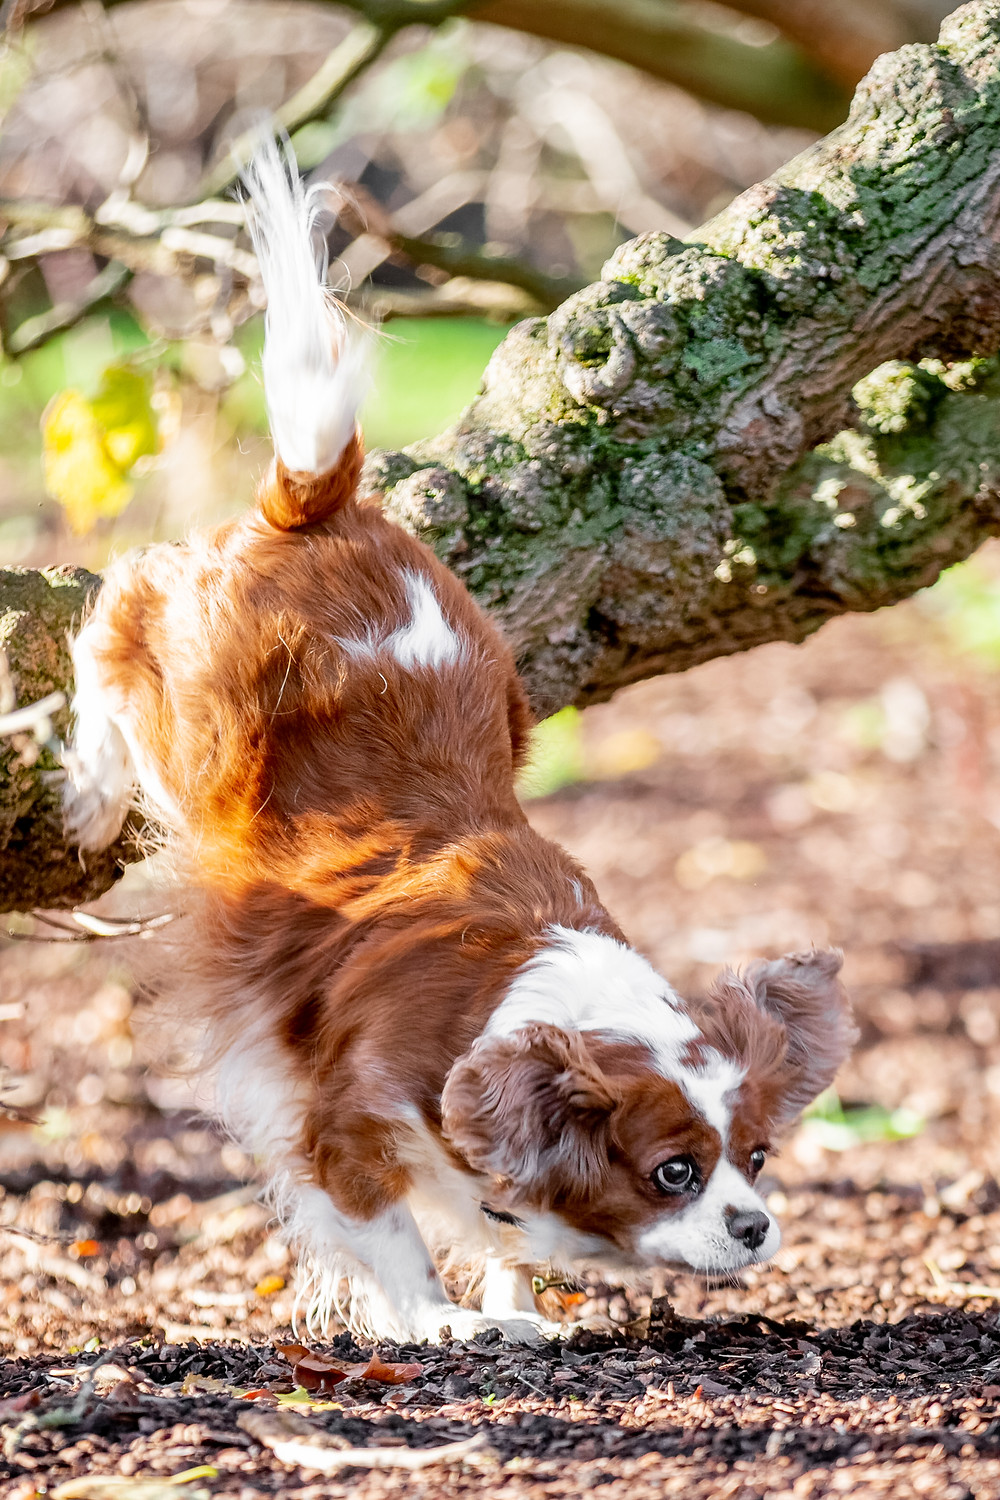 Dog Photography in London, Tiffany the King Charles Spaniel jumping down from a tree